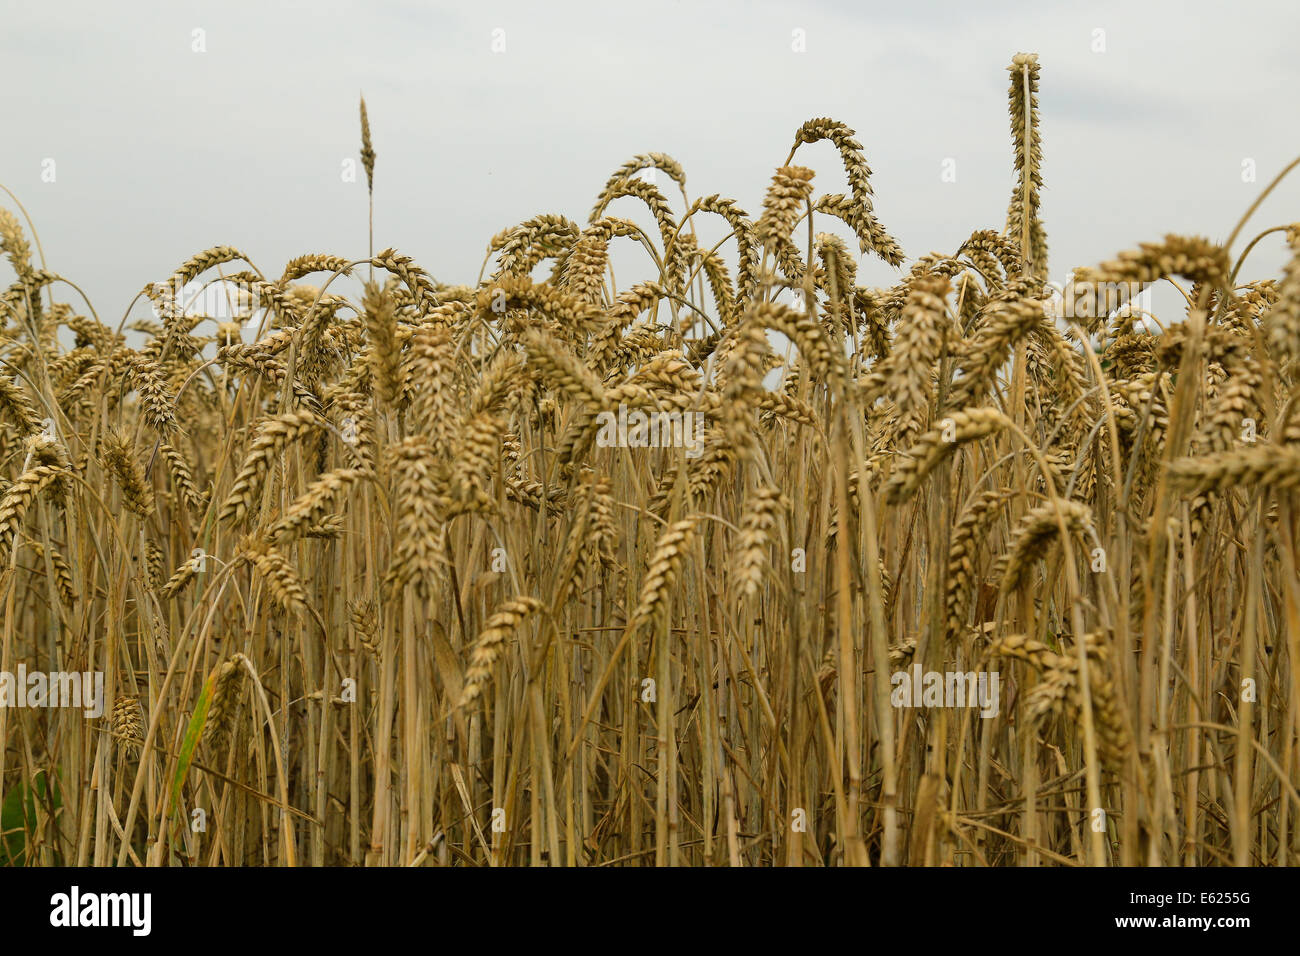 Wheat field close up - Stock Image